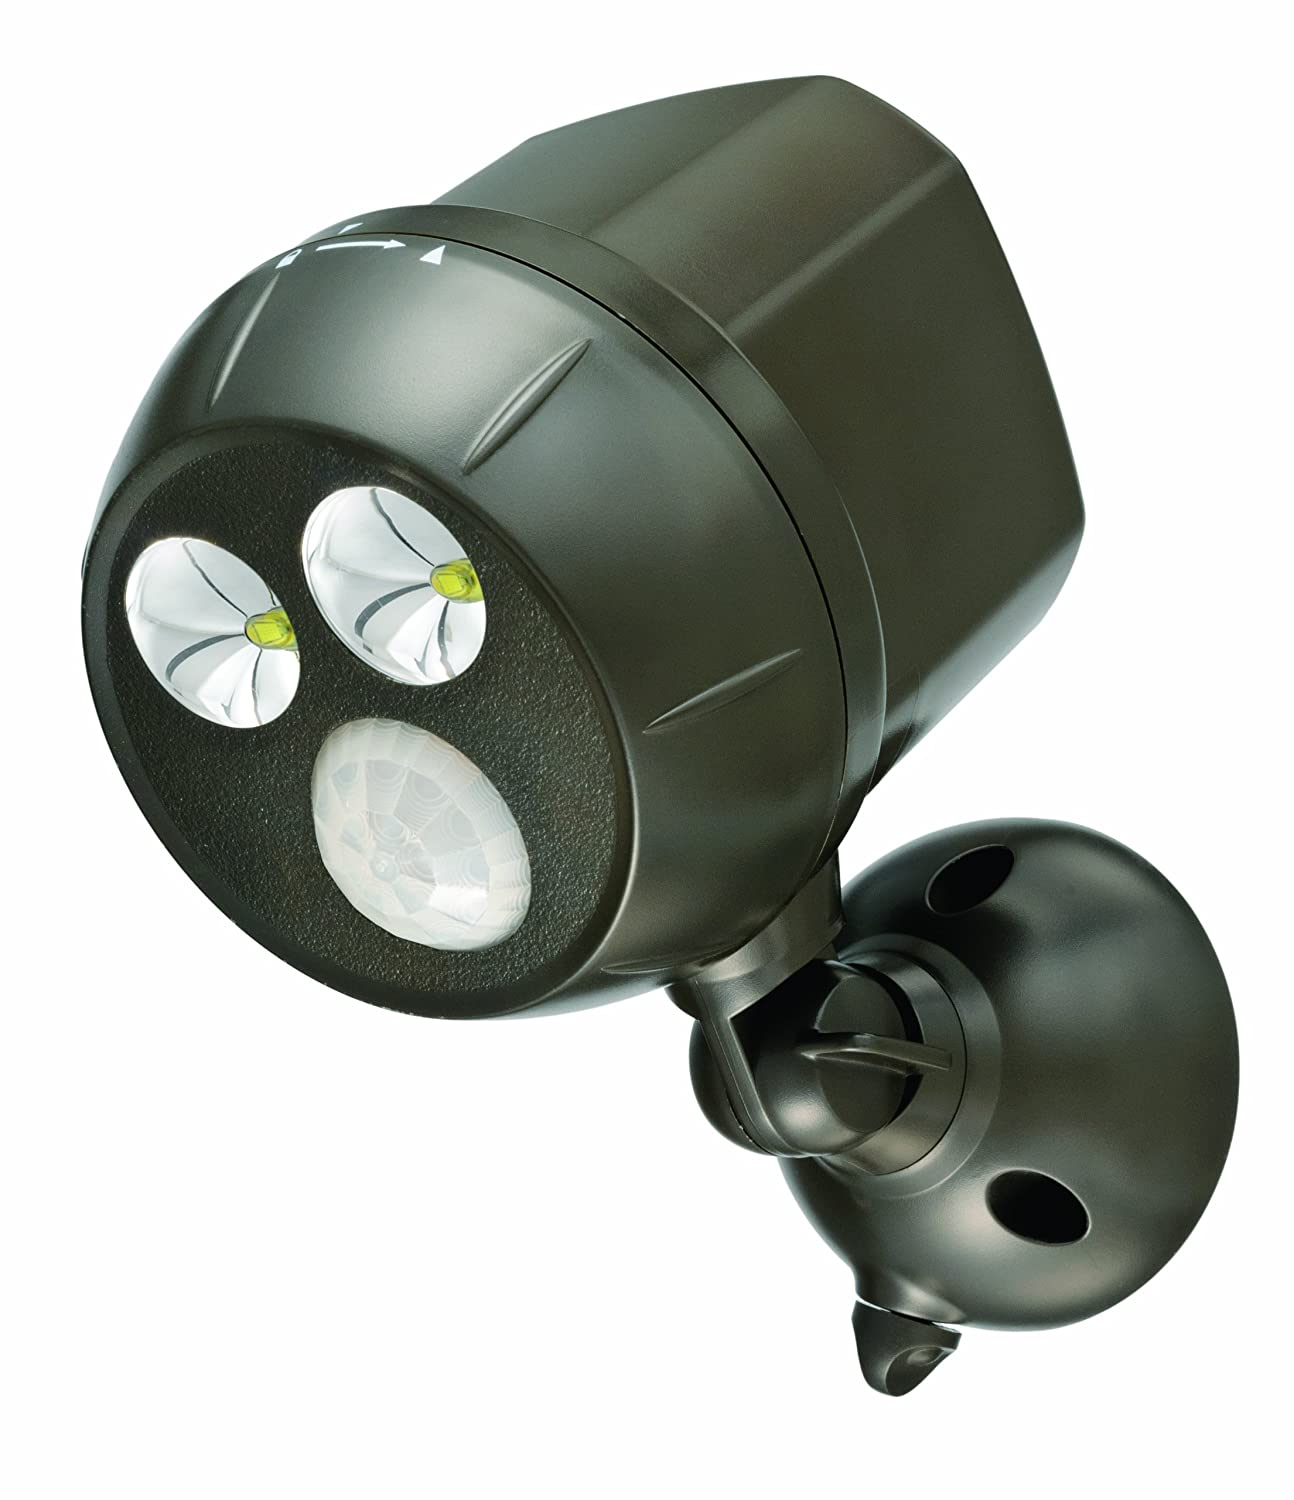 Best Battery Operated Outdoor Motion Sensor Lights Top Reviews With Image